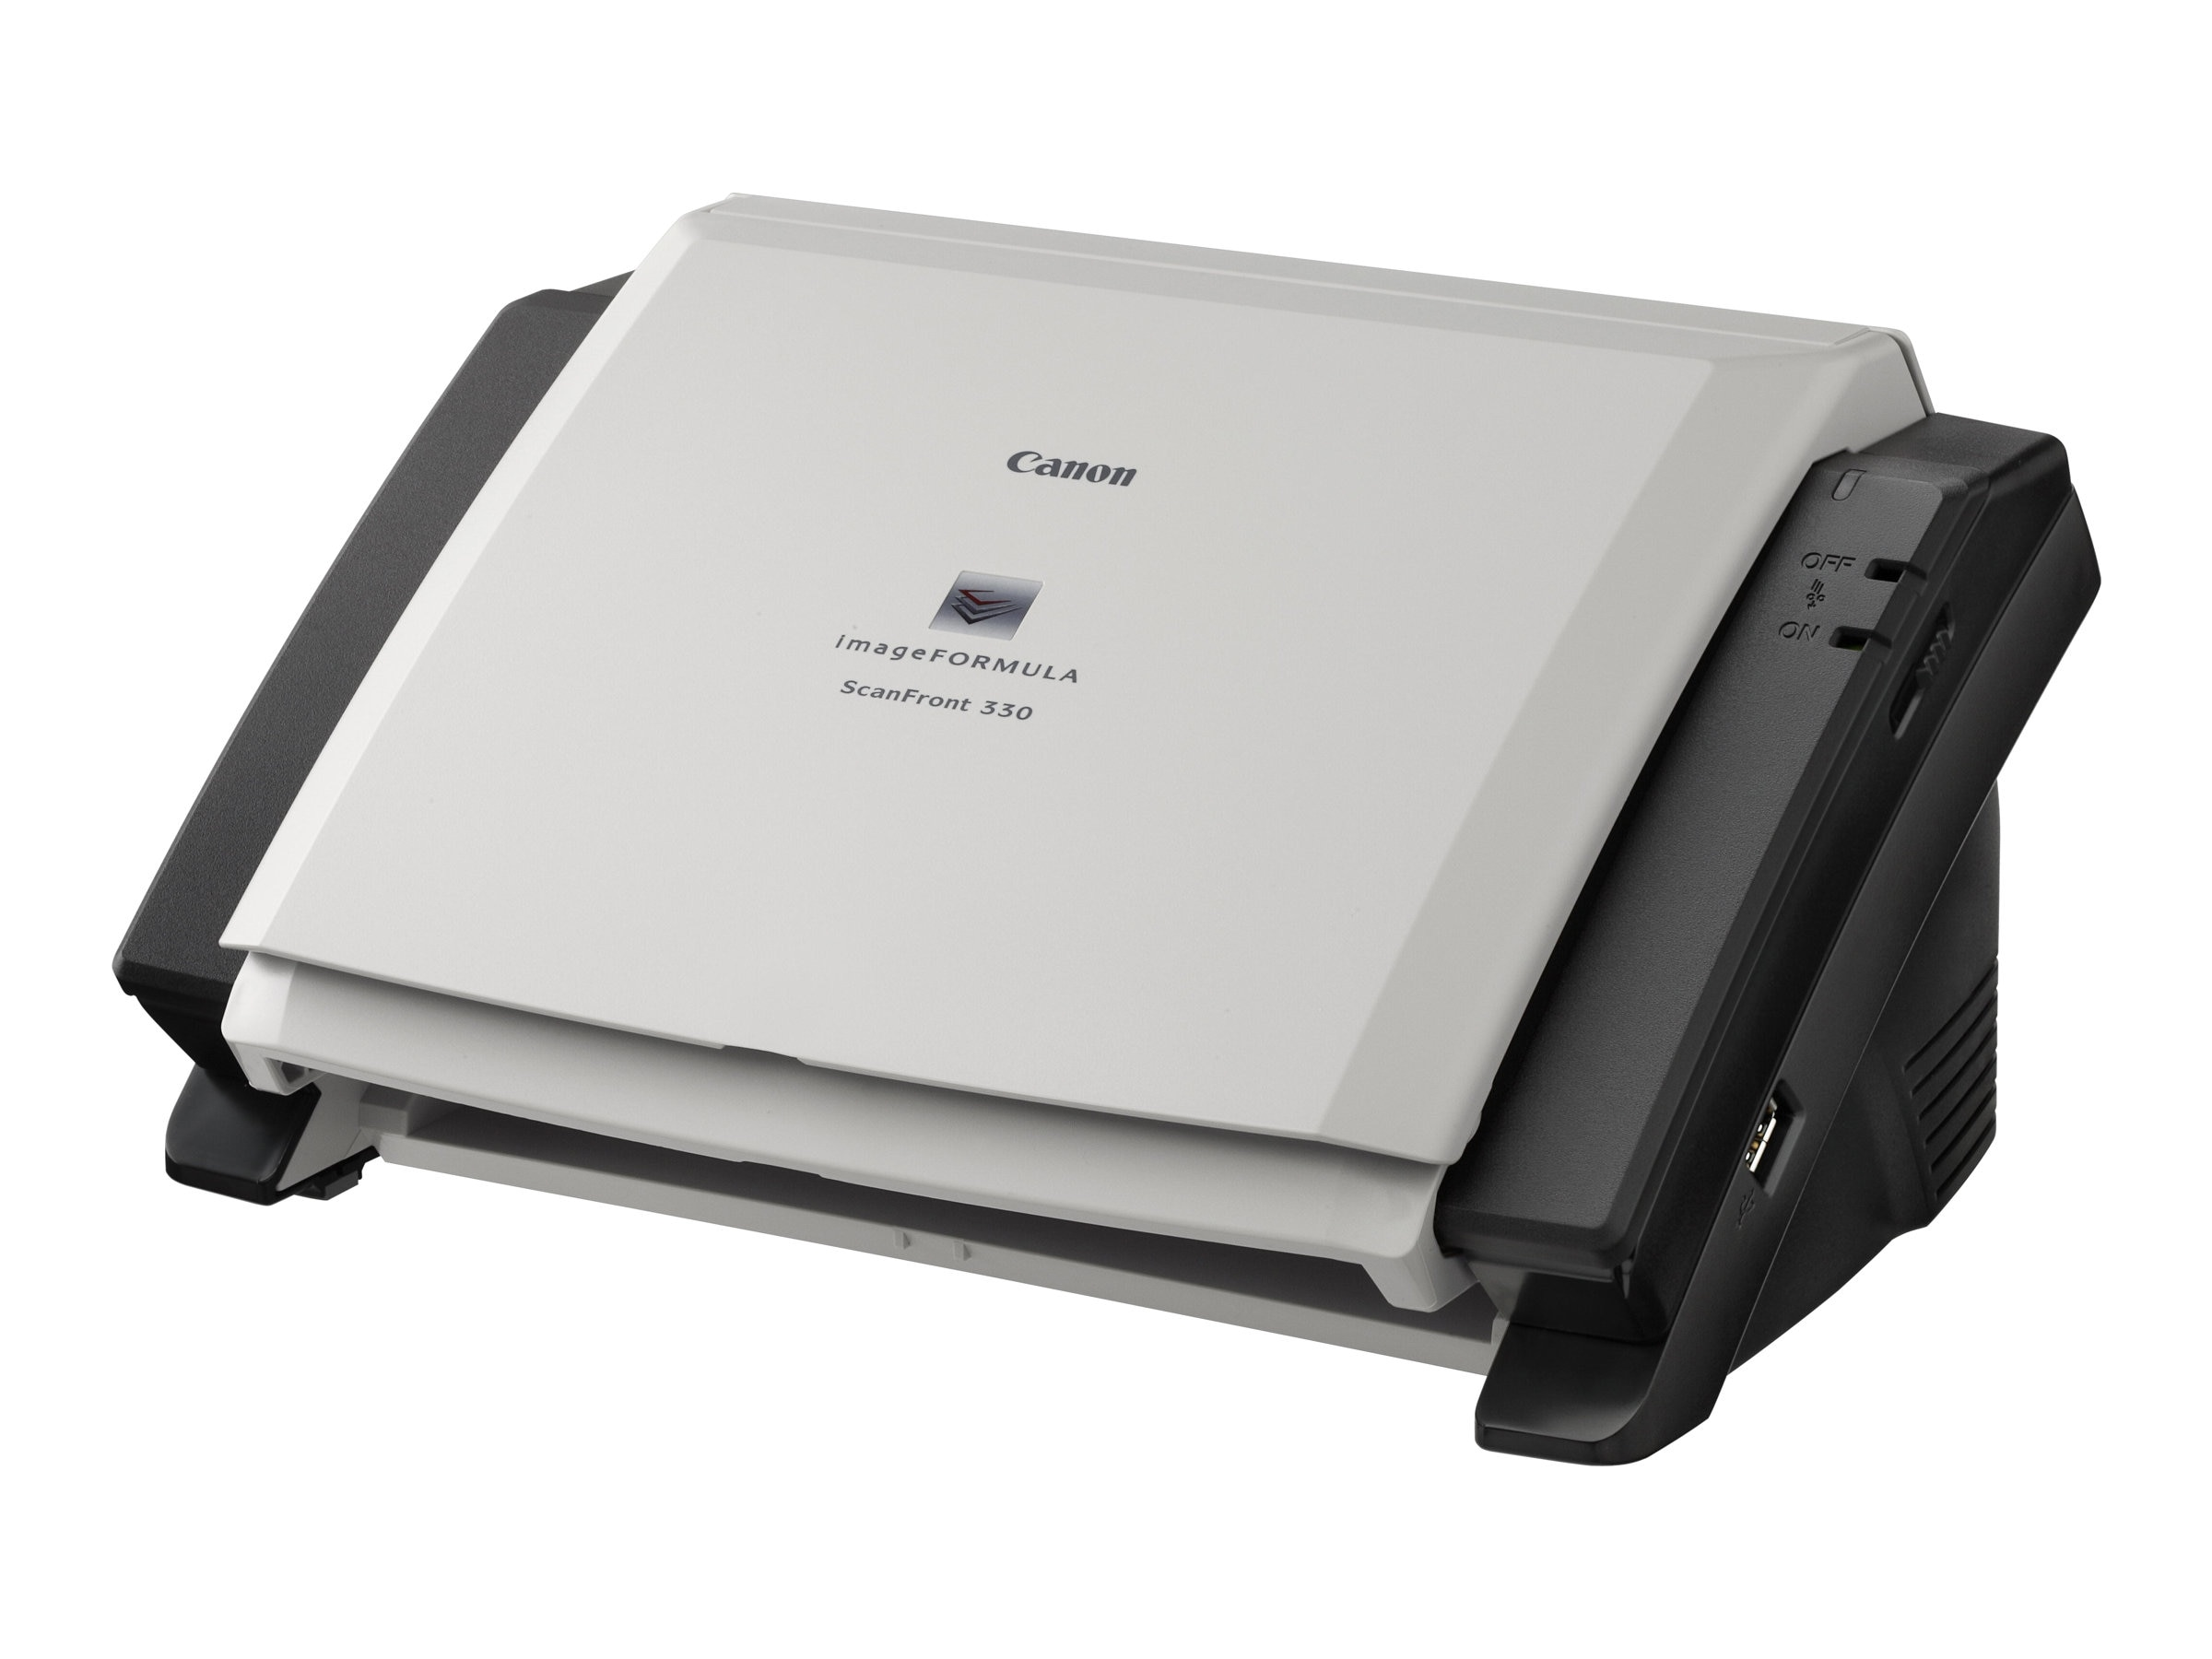 Open Box Canon imageFORMULA ScanFront 330 Sheetfed 24-bit Color 600dpi USB Network Scanner